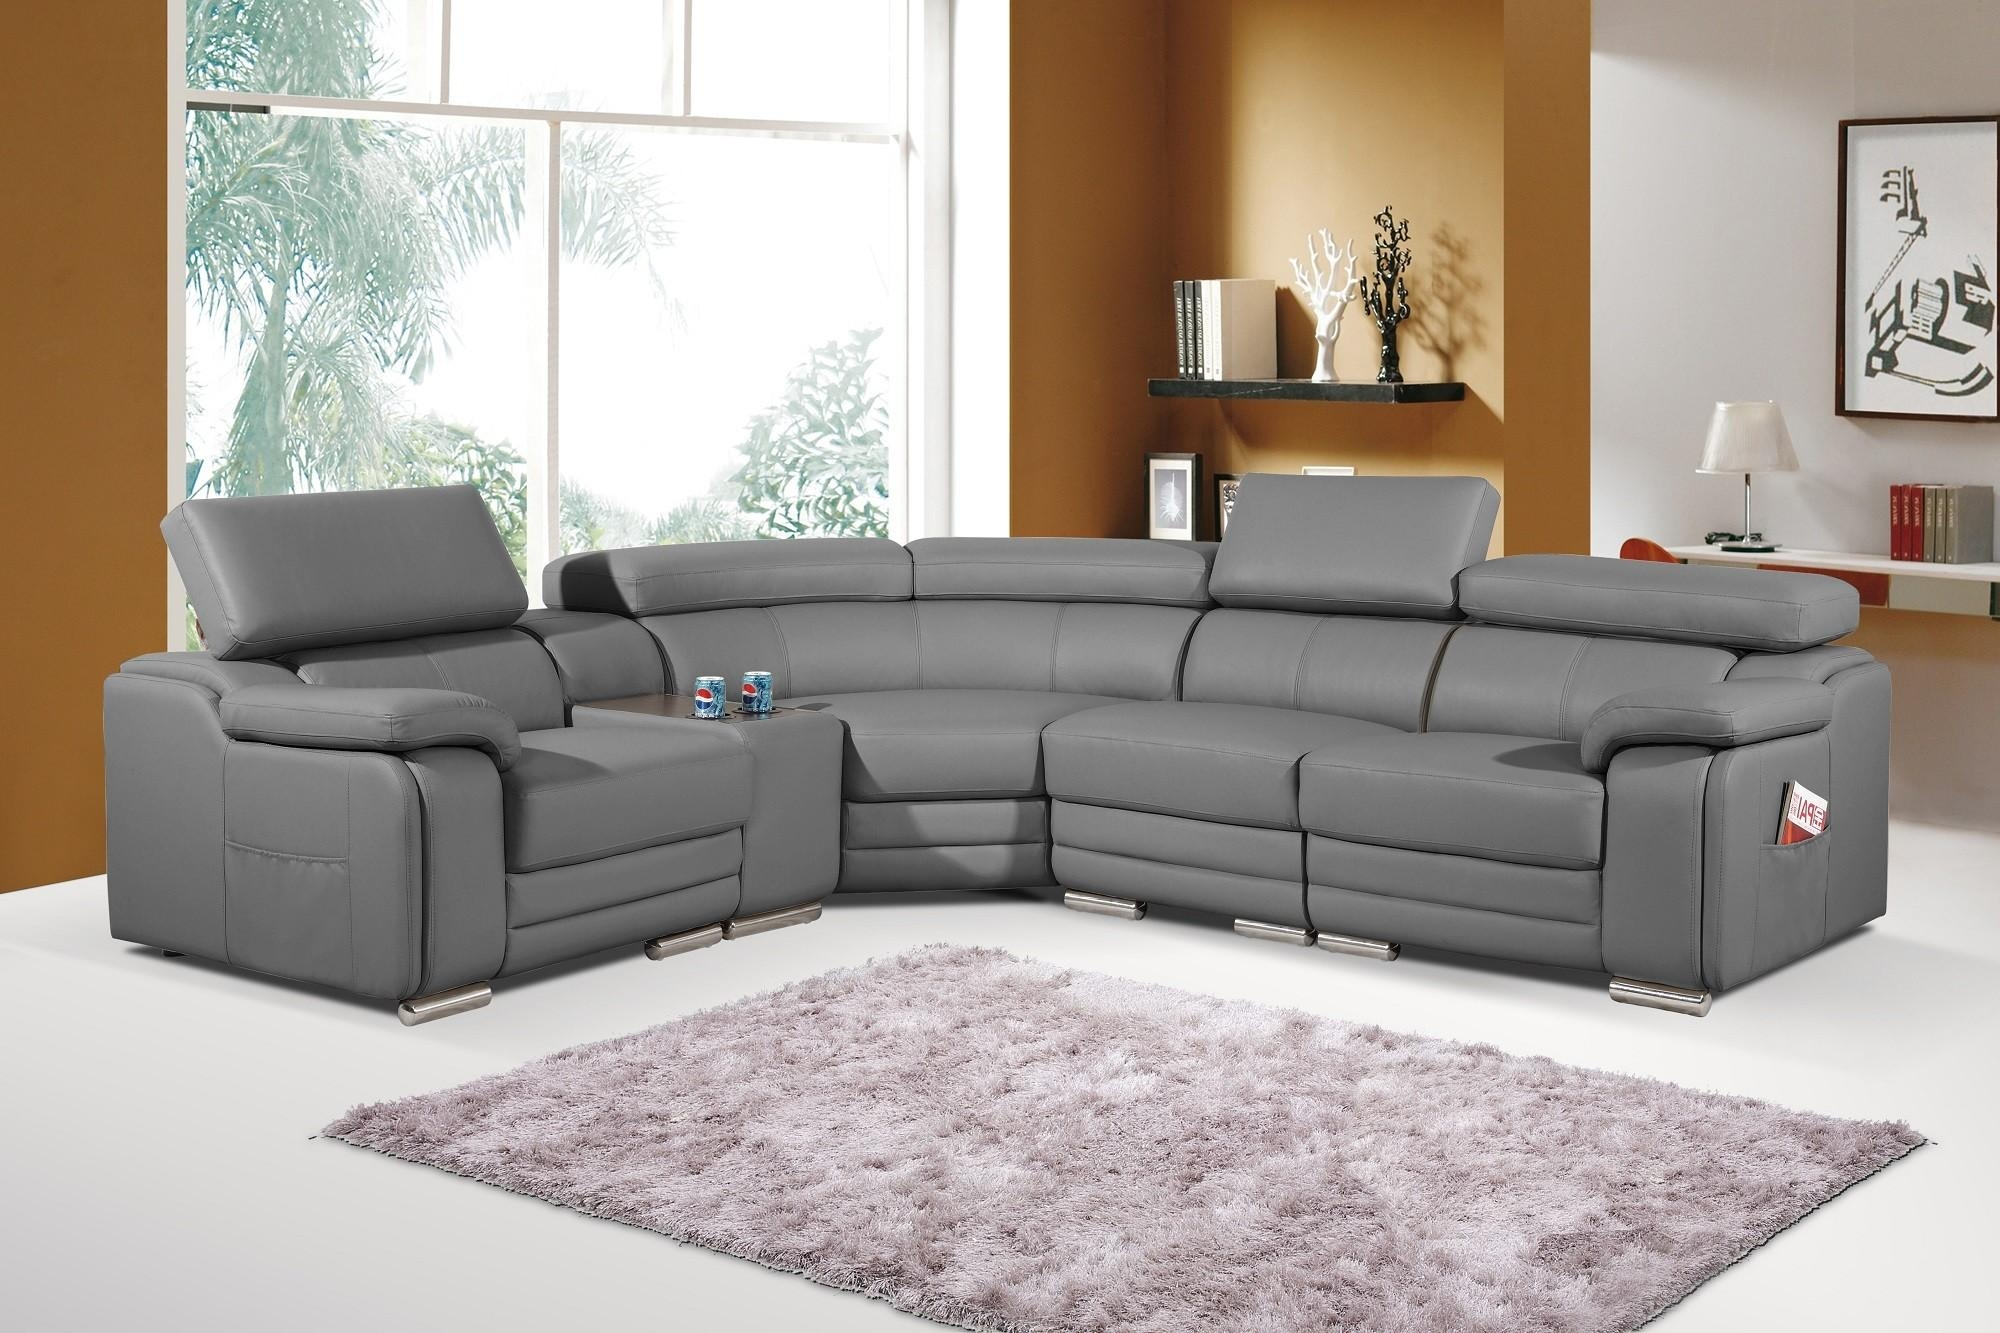 Ideas: Interesting Britania Corner Couch With Elegant Pattern For For Sofa Corner Units (View 18 of 24)